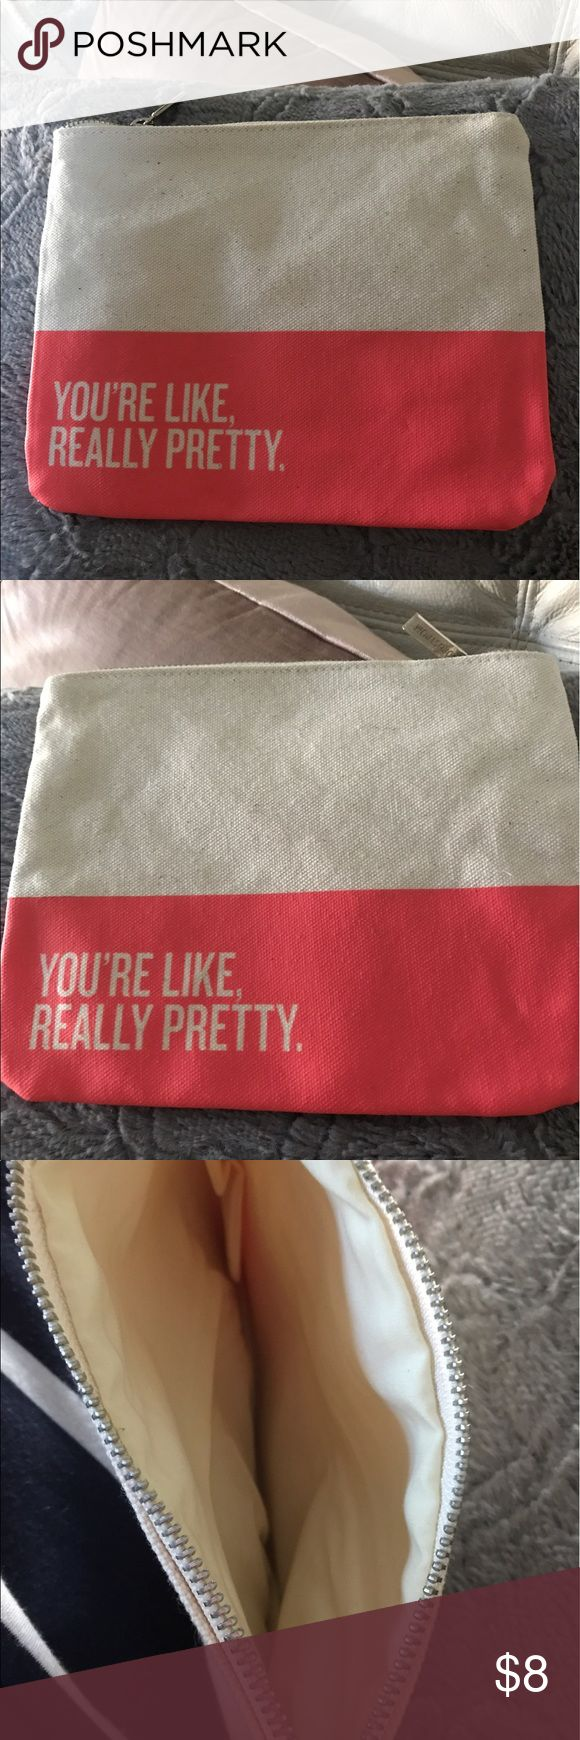 Just In 🦄New Nordstrom Really Pretty makeup bag Brand New Nordstrom cosmetic bag with the catch phrase You're Like Really Pretty on both sides of pink panel, zipper closure with Nordstrom logo pull emblem,great for makeup, credit cards, mini carry purse, you need this bag because You're Like Really Pretty Nordstrom Bags Cosmetic Bags & Cases